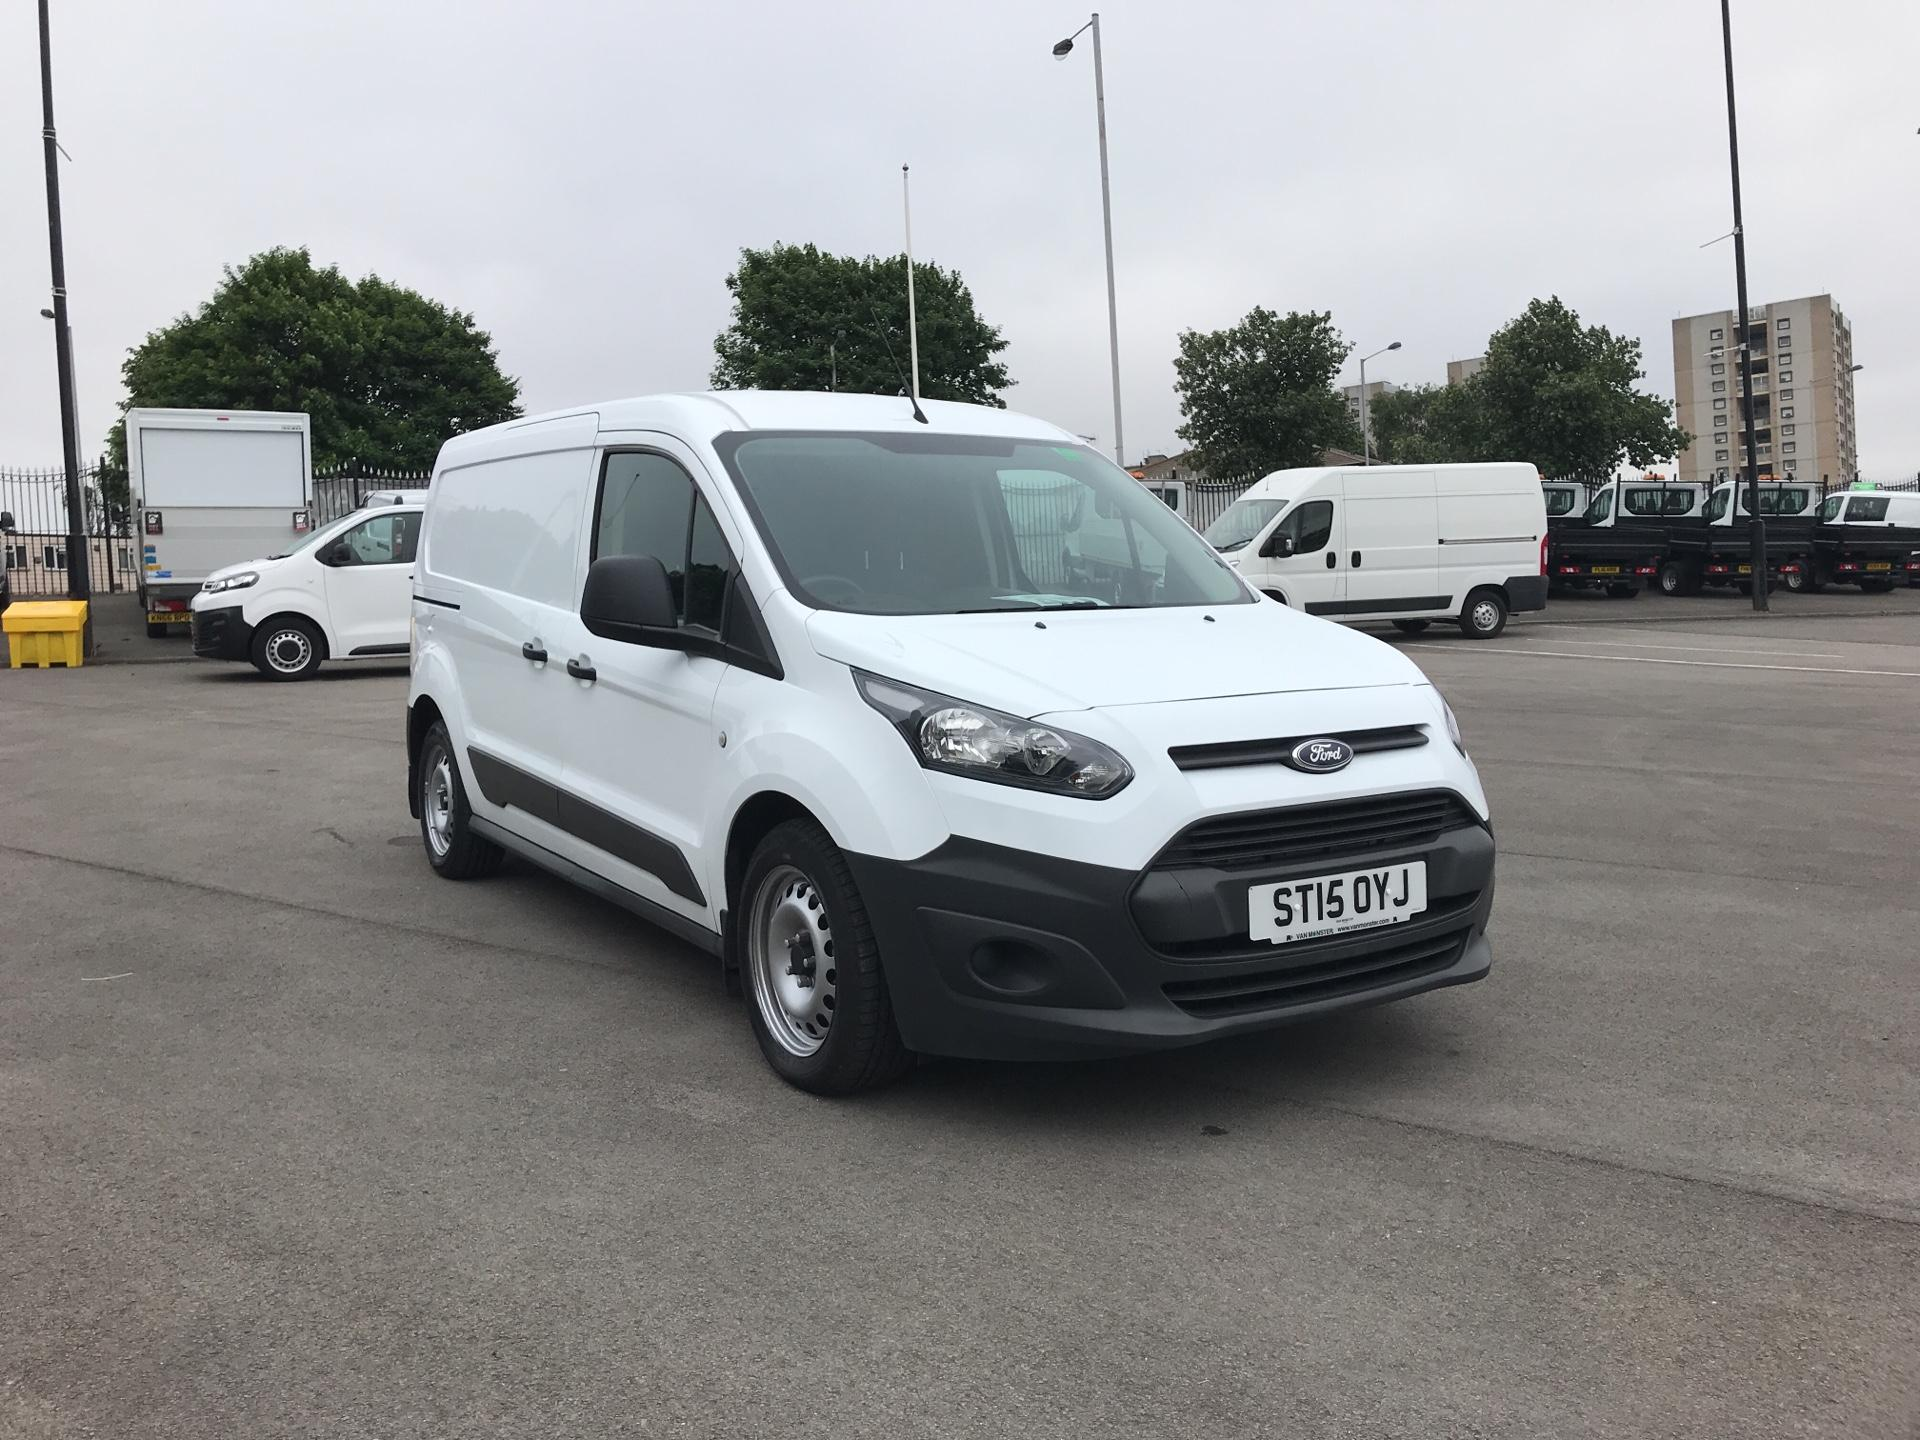 2015 Ford Transit Connect L2 DIESEL 1.6 TDCi 95PS DOUBLE CAB VAN EURO 5 (ST15OYJ)